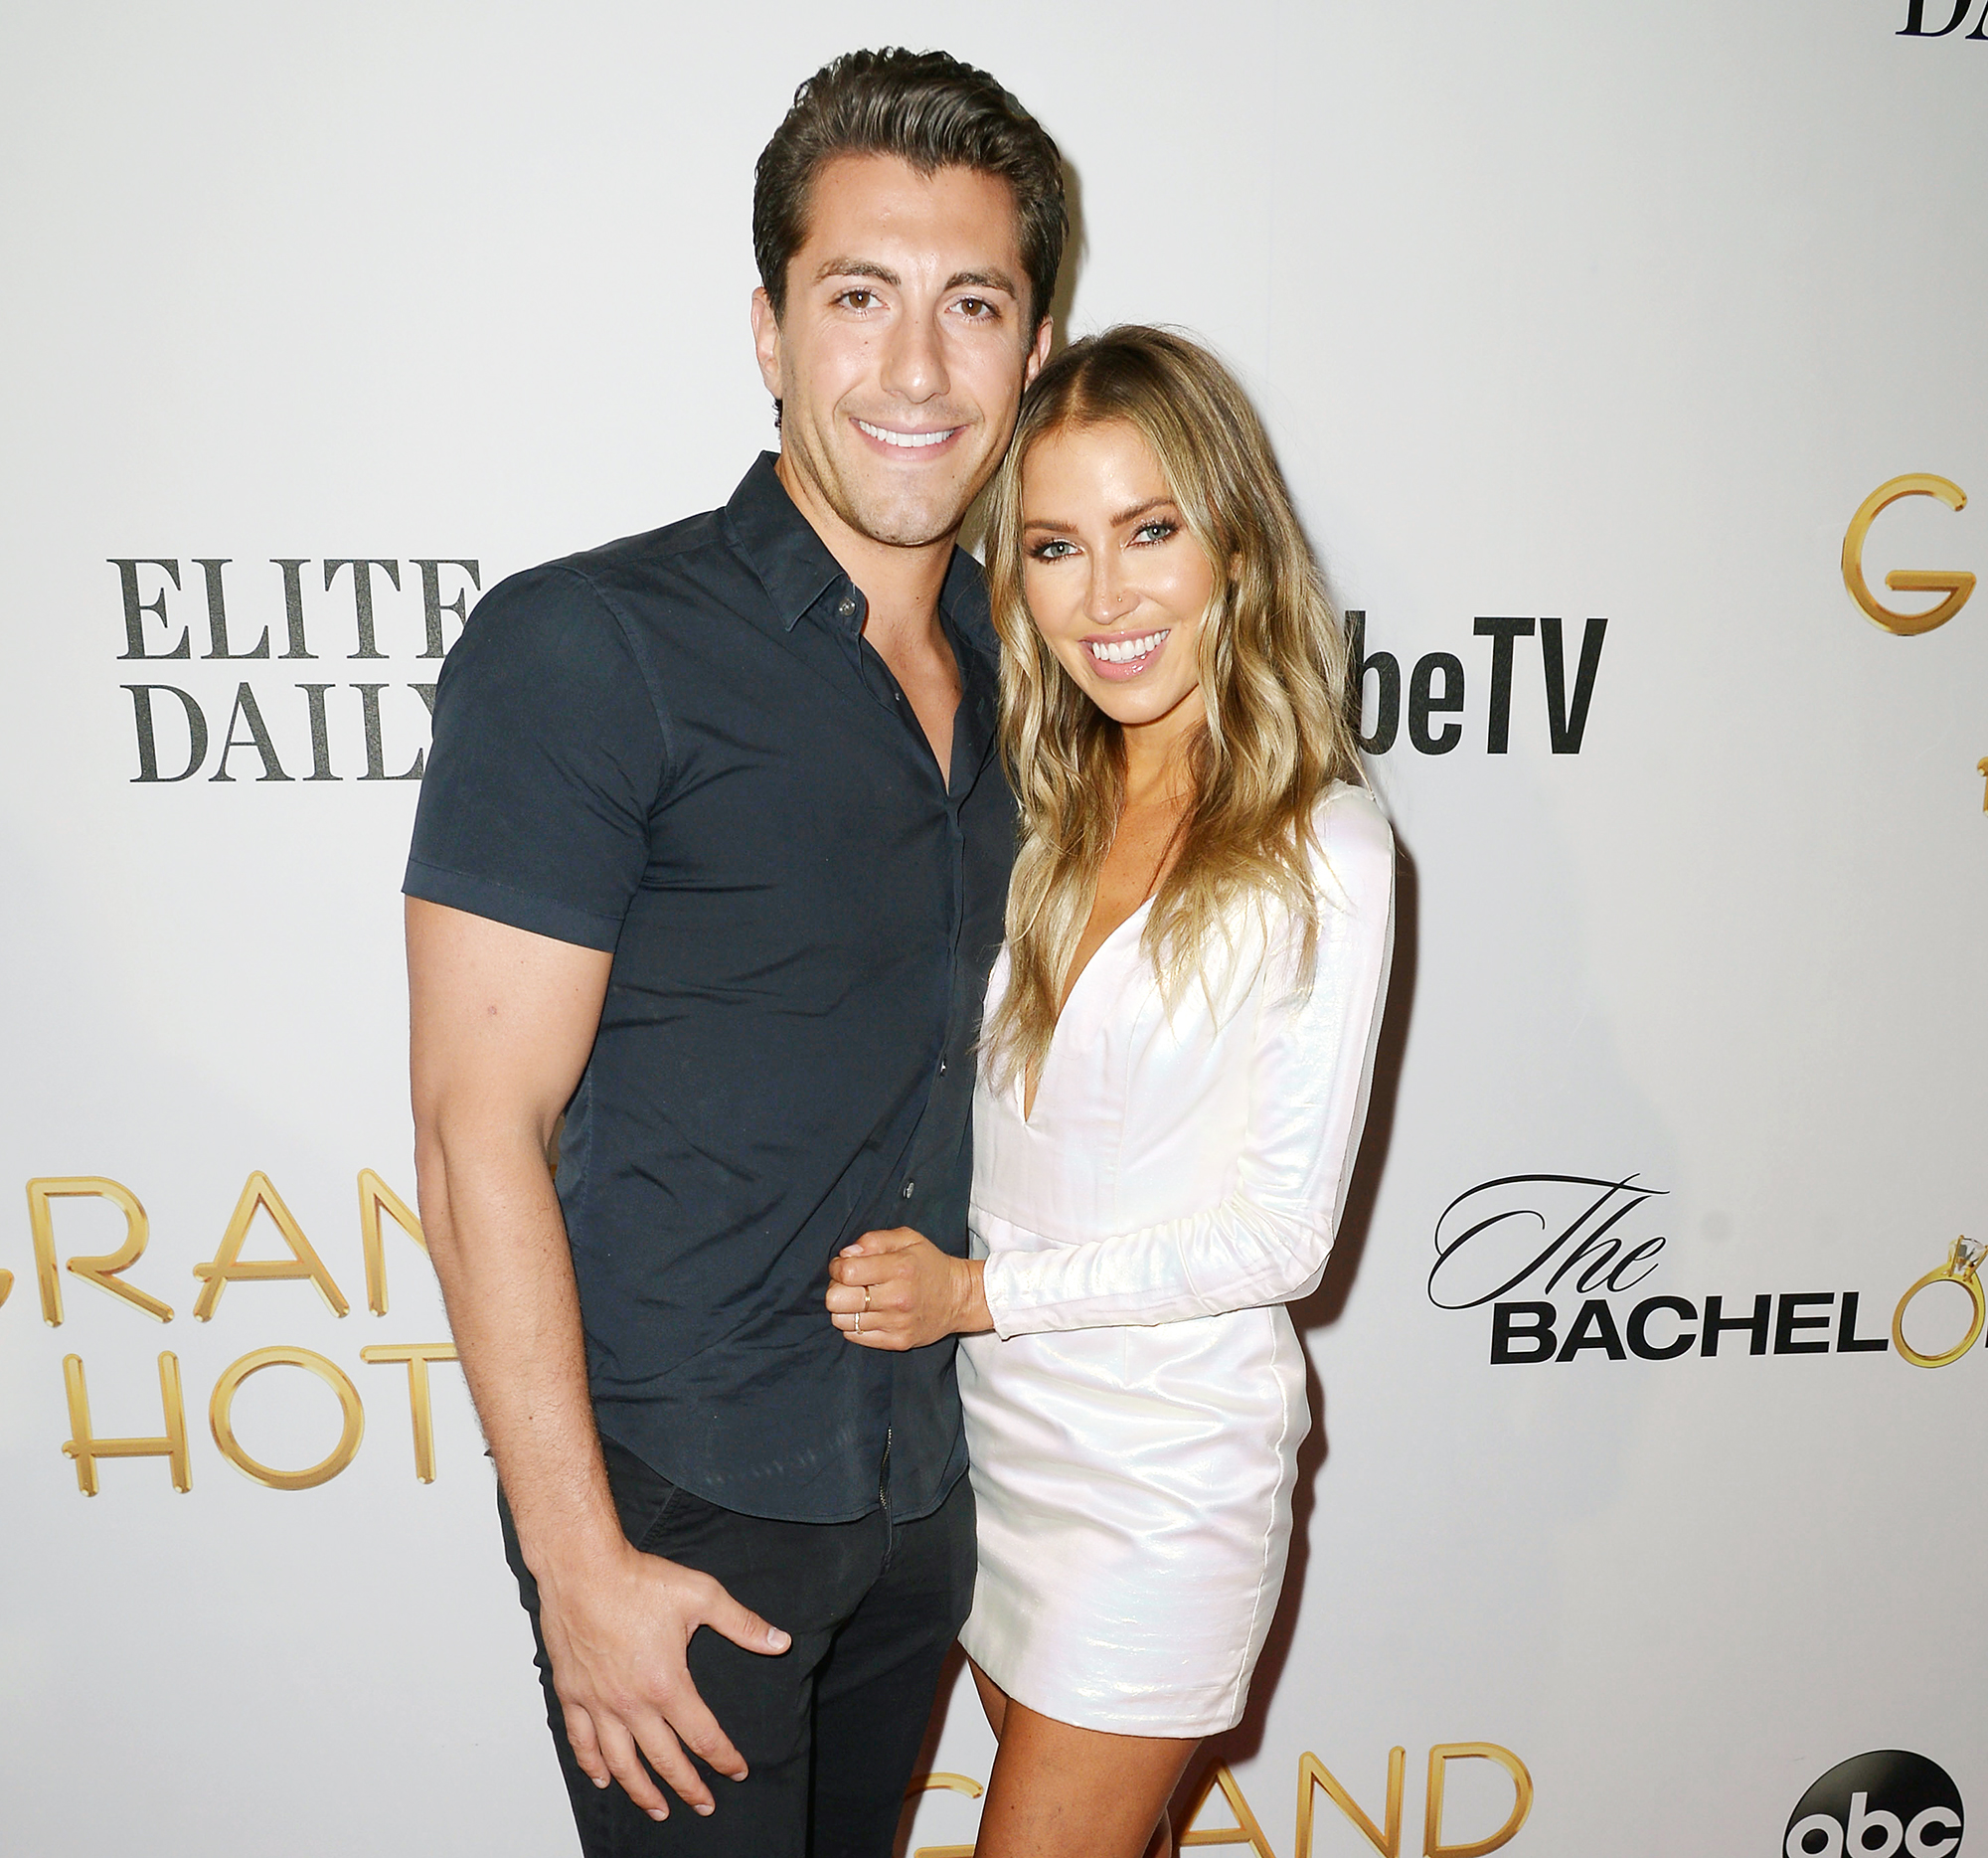 Jason Tartick Was Offered a Neil Lane Ring if He Proposed to Kaitlyn Bristowe During The Bachelor Greatest Seasons Ever